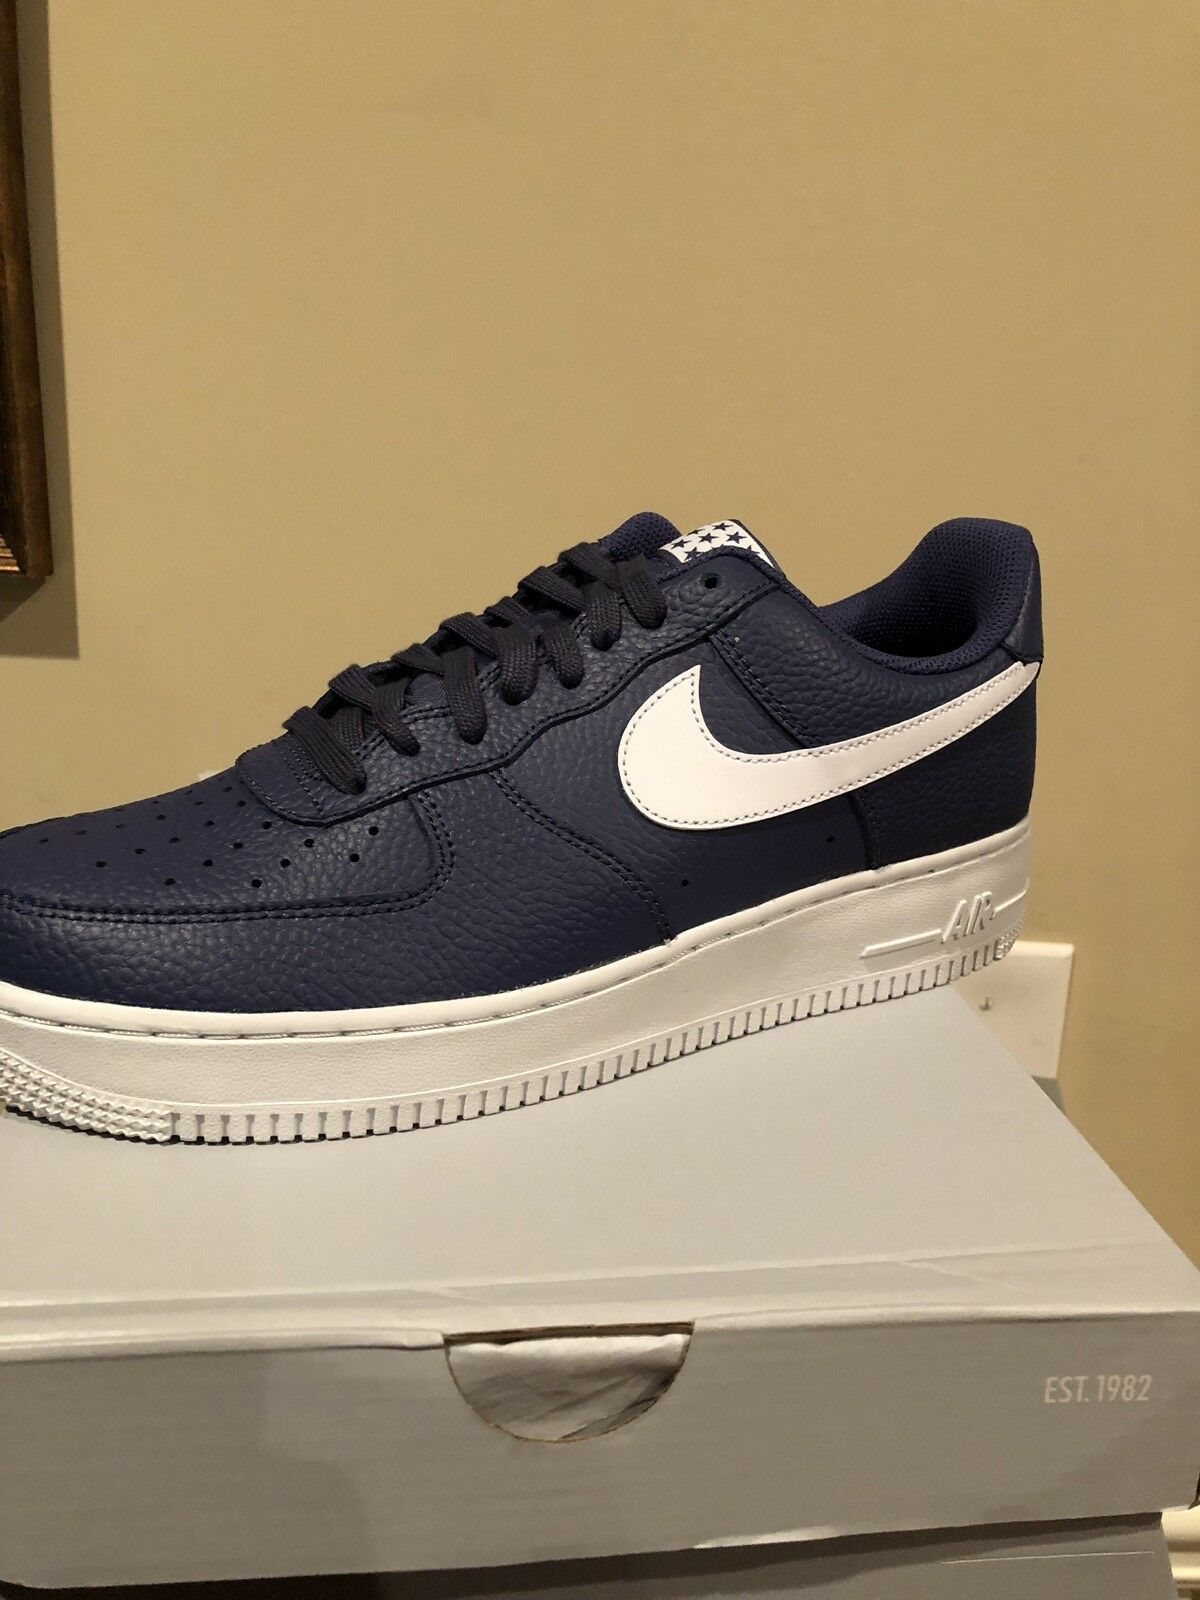 8940cac64c New Nike Air Force 1 '07 Low Mens shoes Size 9.5 bluee Recall White AA4083